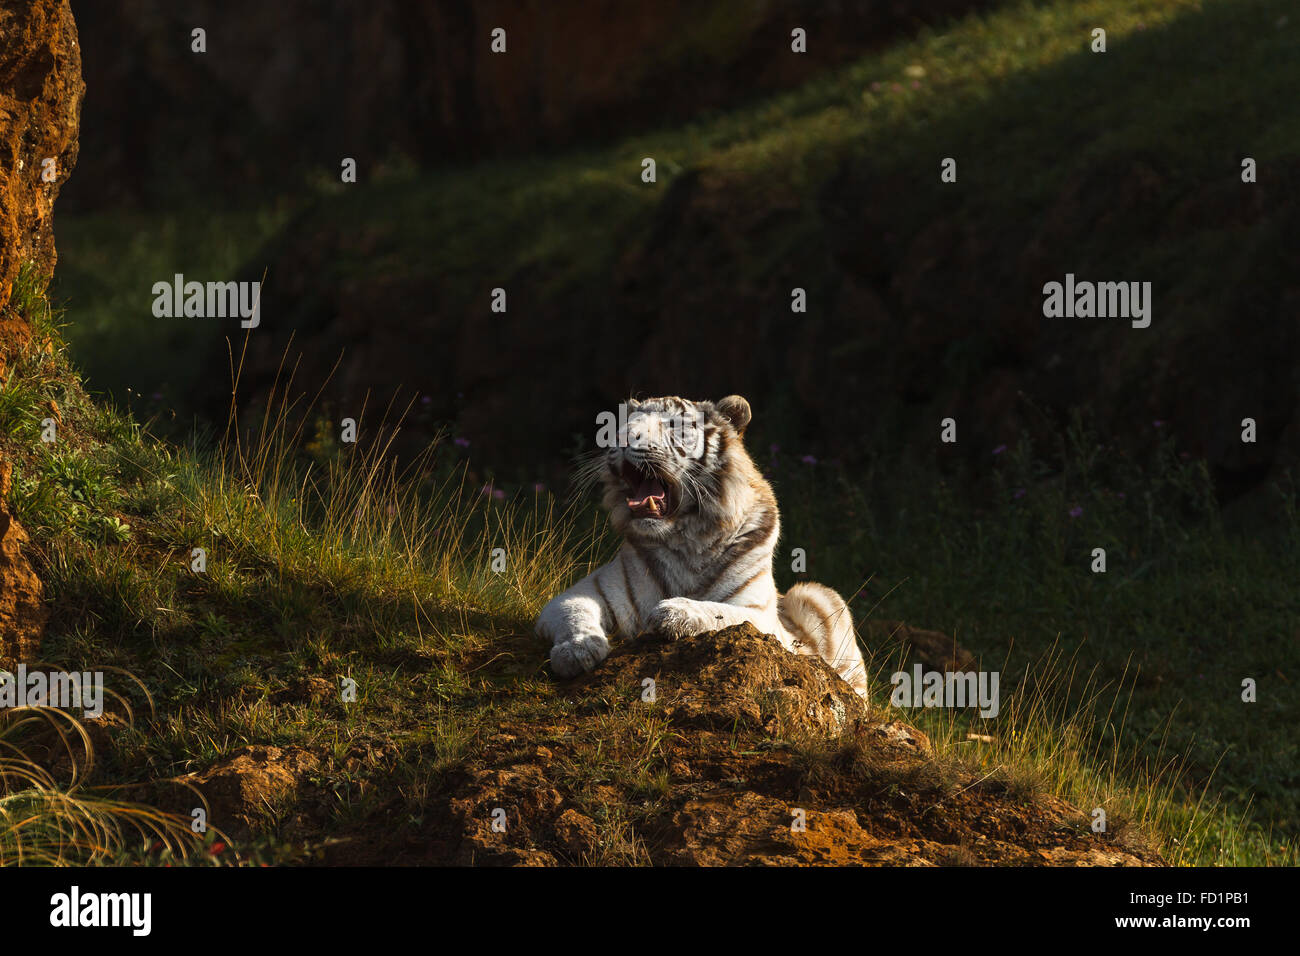 A white tiger (Panthera tigris tigris) resting in Cabarceno Nature Park, Cantabria, Spain. - Stock Image